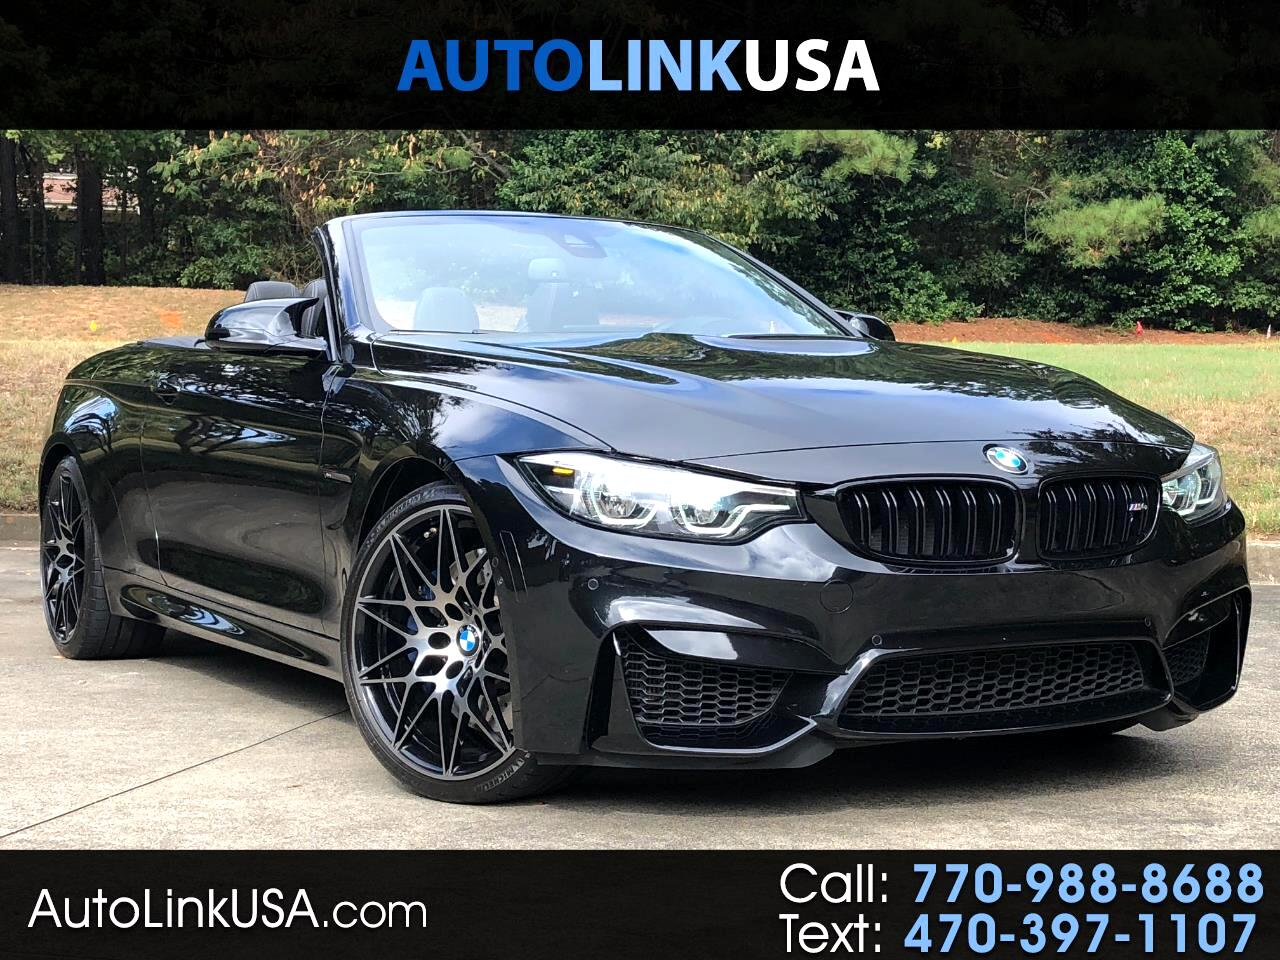 2018 BMW M4 Competition/Executive Convertible